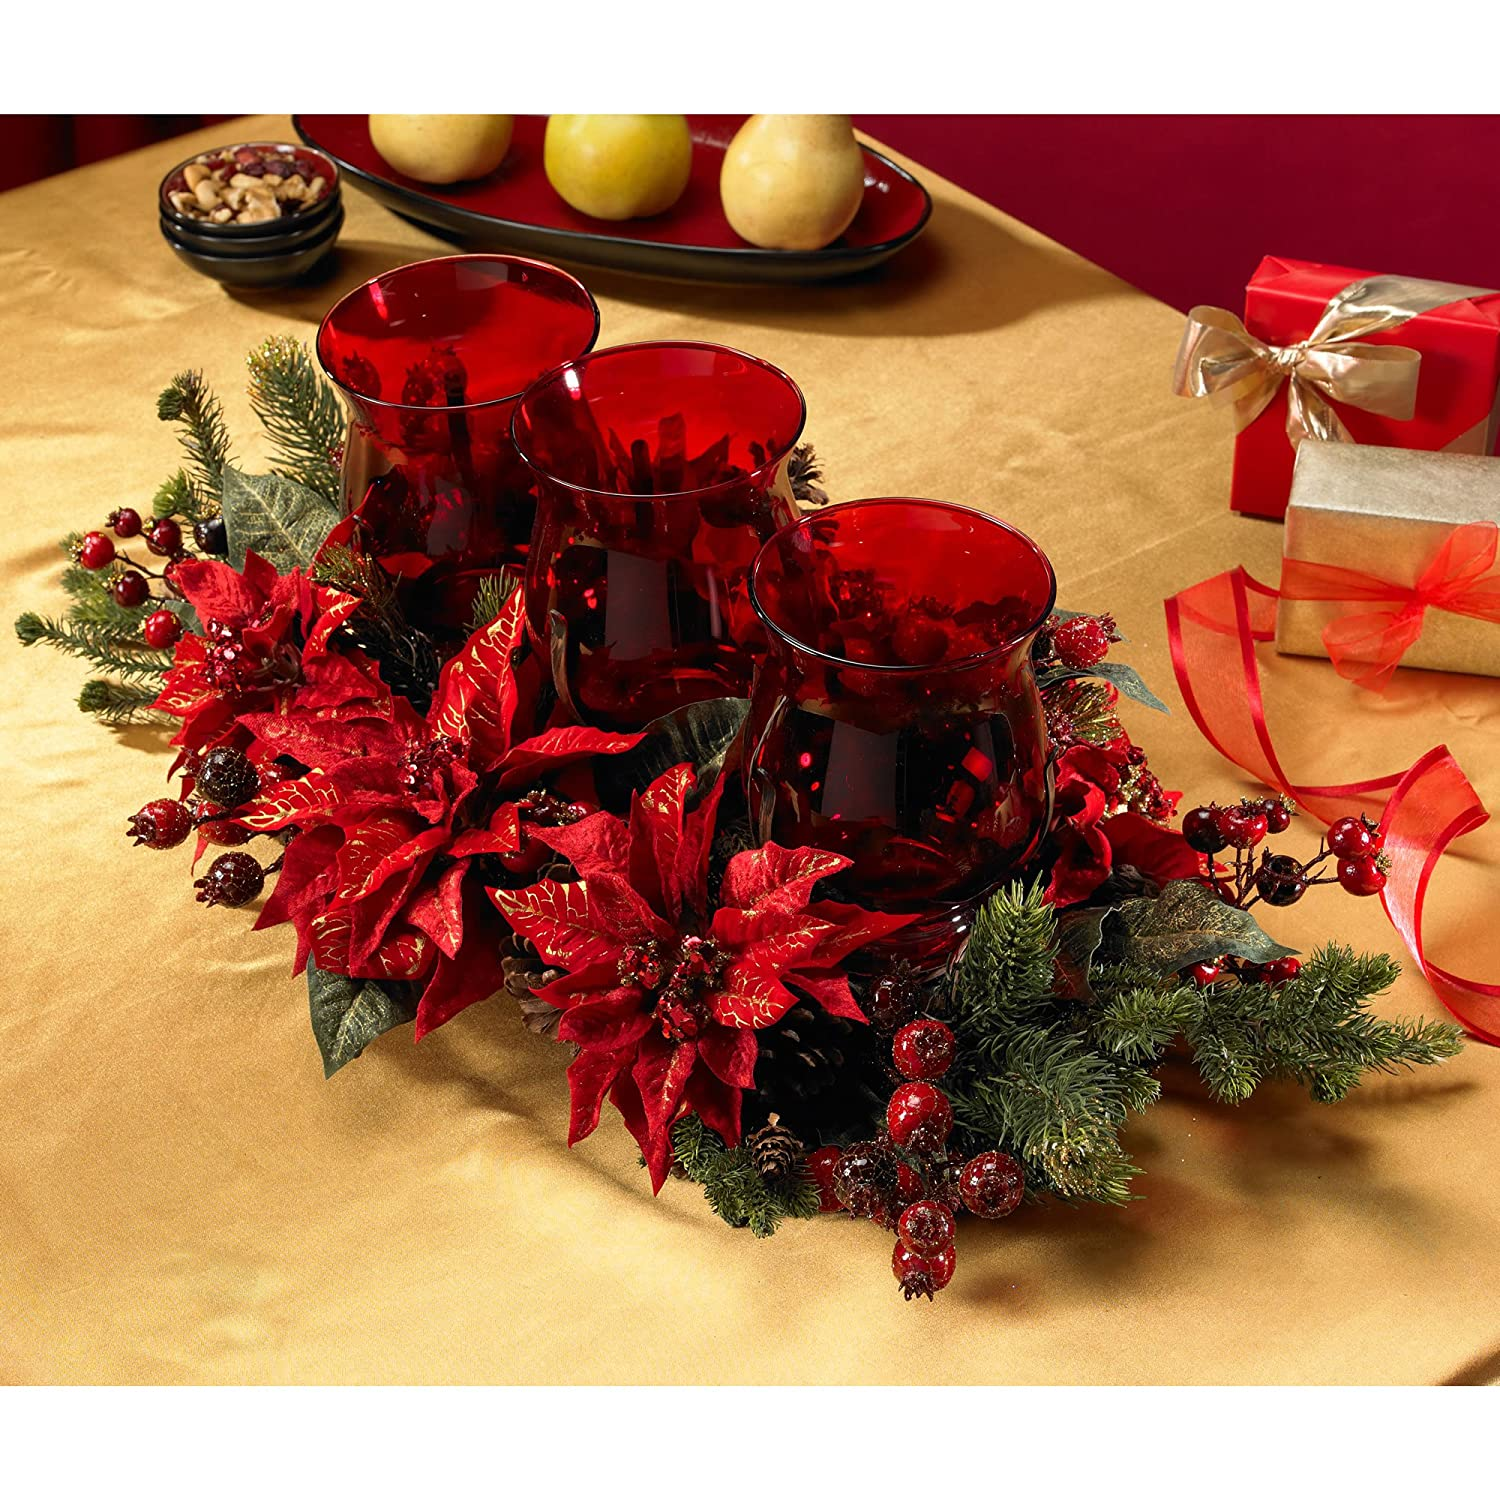 Poinsettia & Berry Centerpiece for Christmas Table 30 In. W x 16 In. D x 9 In. H.